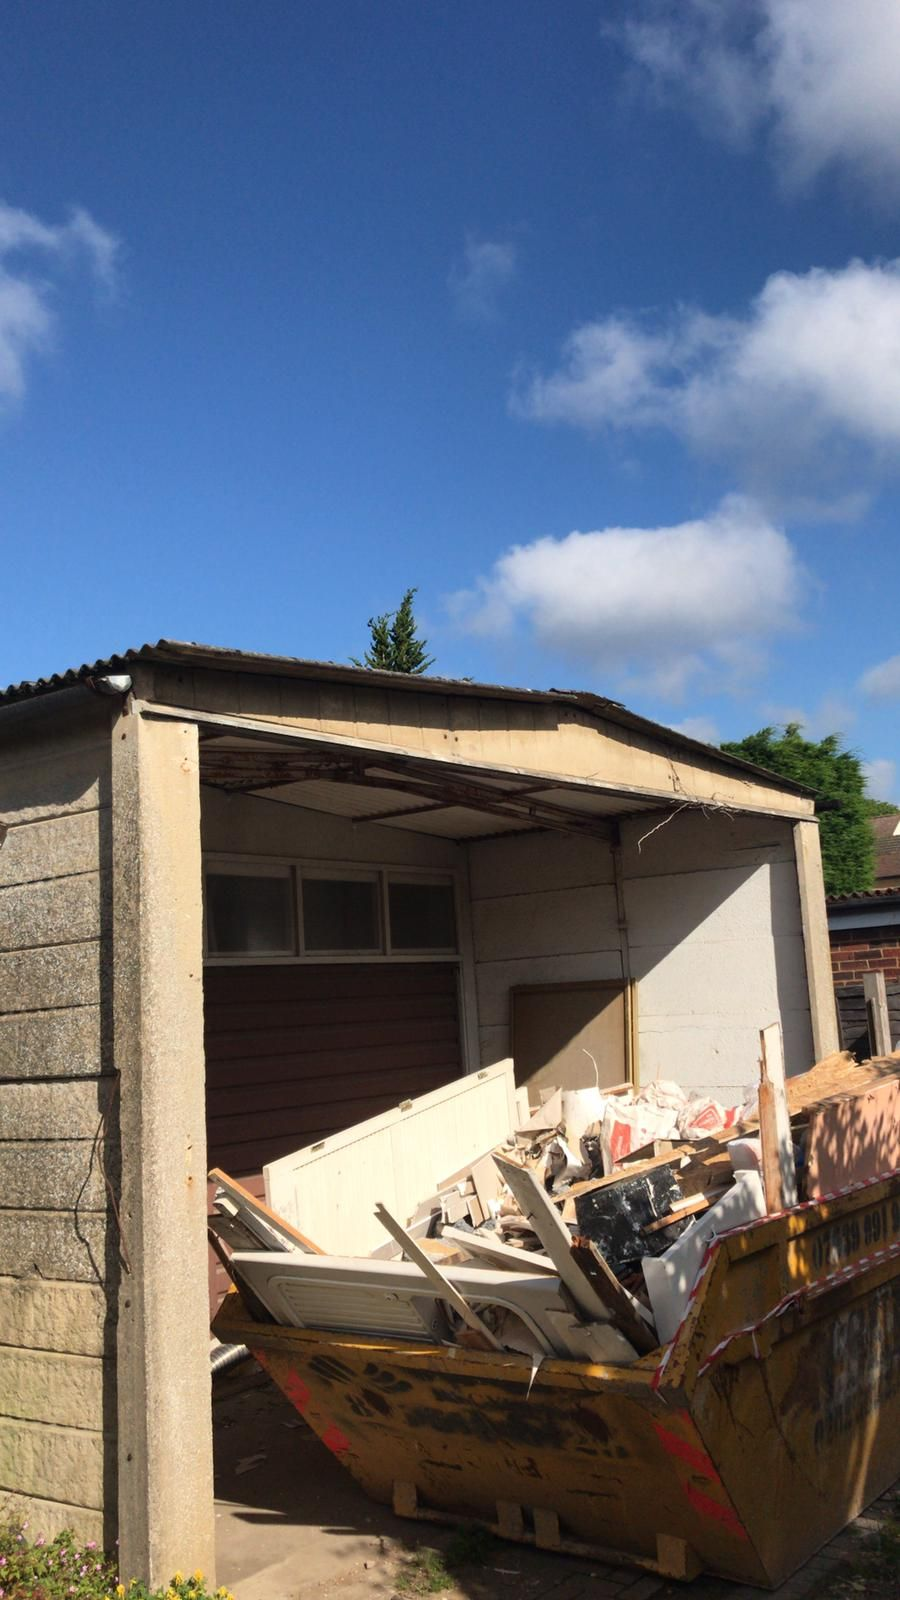 Double Garage For An Asbestos Roof Removal Wembley London Www Asbestoslondon Org 01277 546070 In Asbestos Asbestos Removal Double Garage